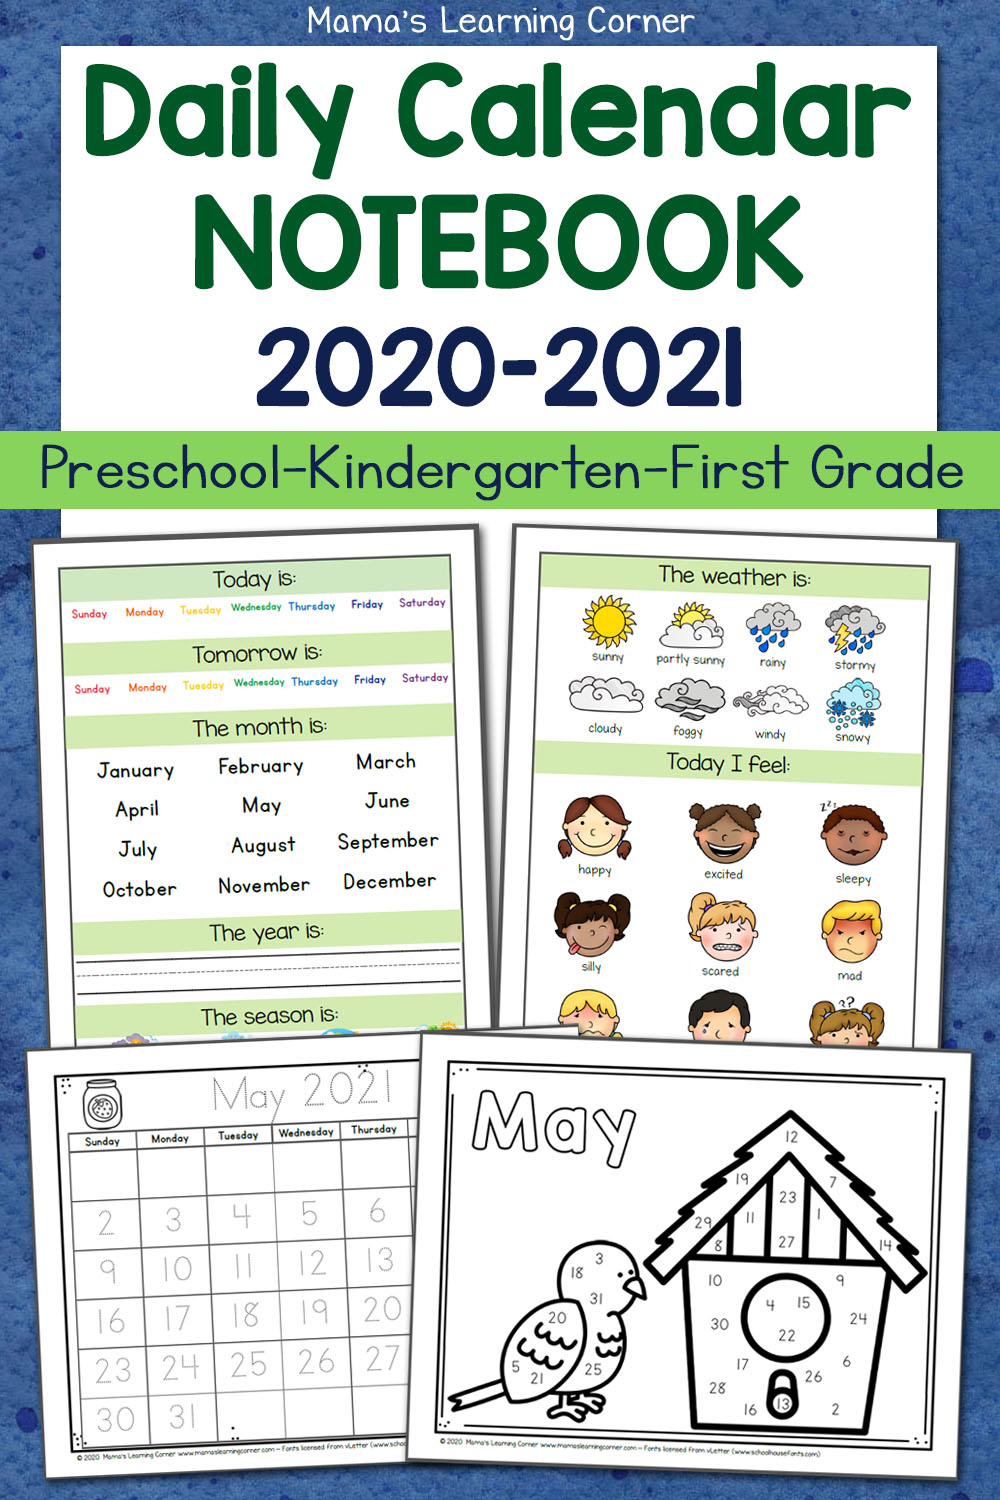 medium resolution of Daily Calendar Notebooks for 2020-2021 - Mamas Learning Corner